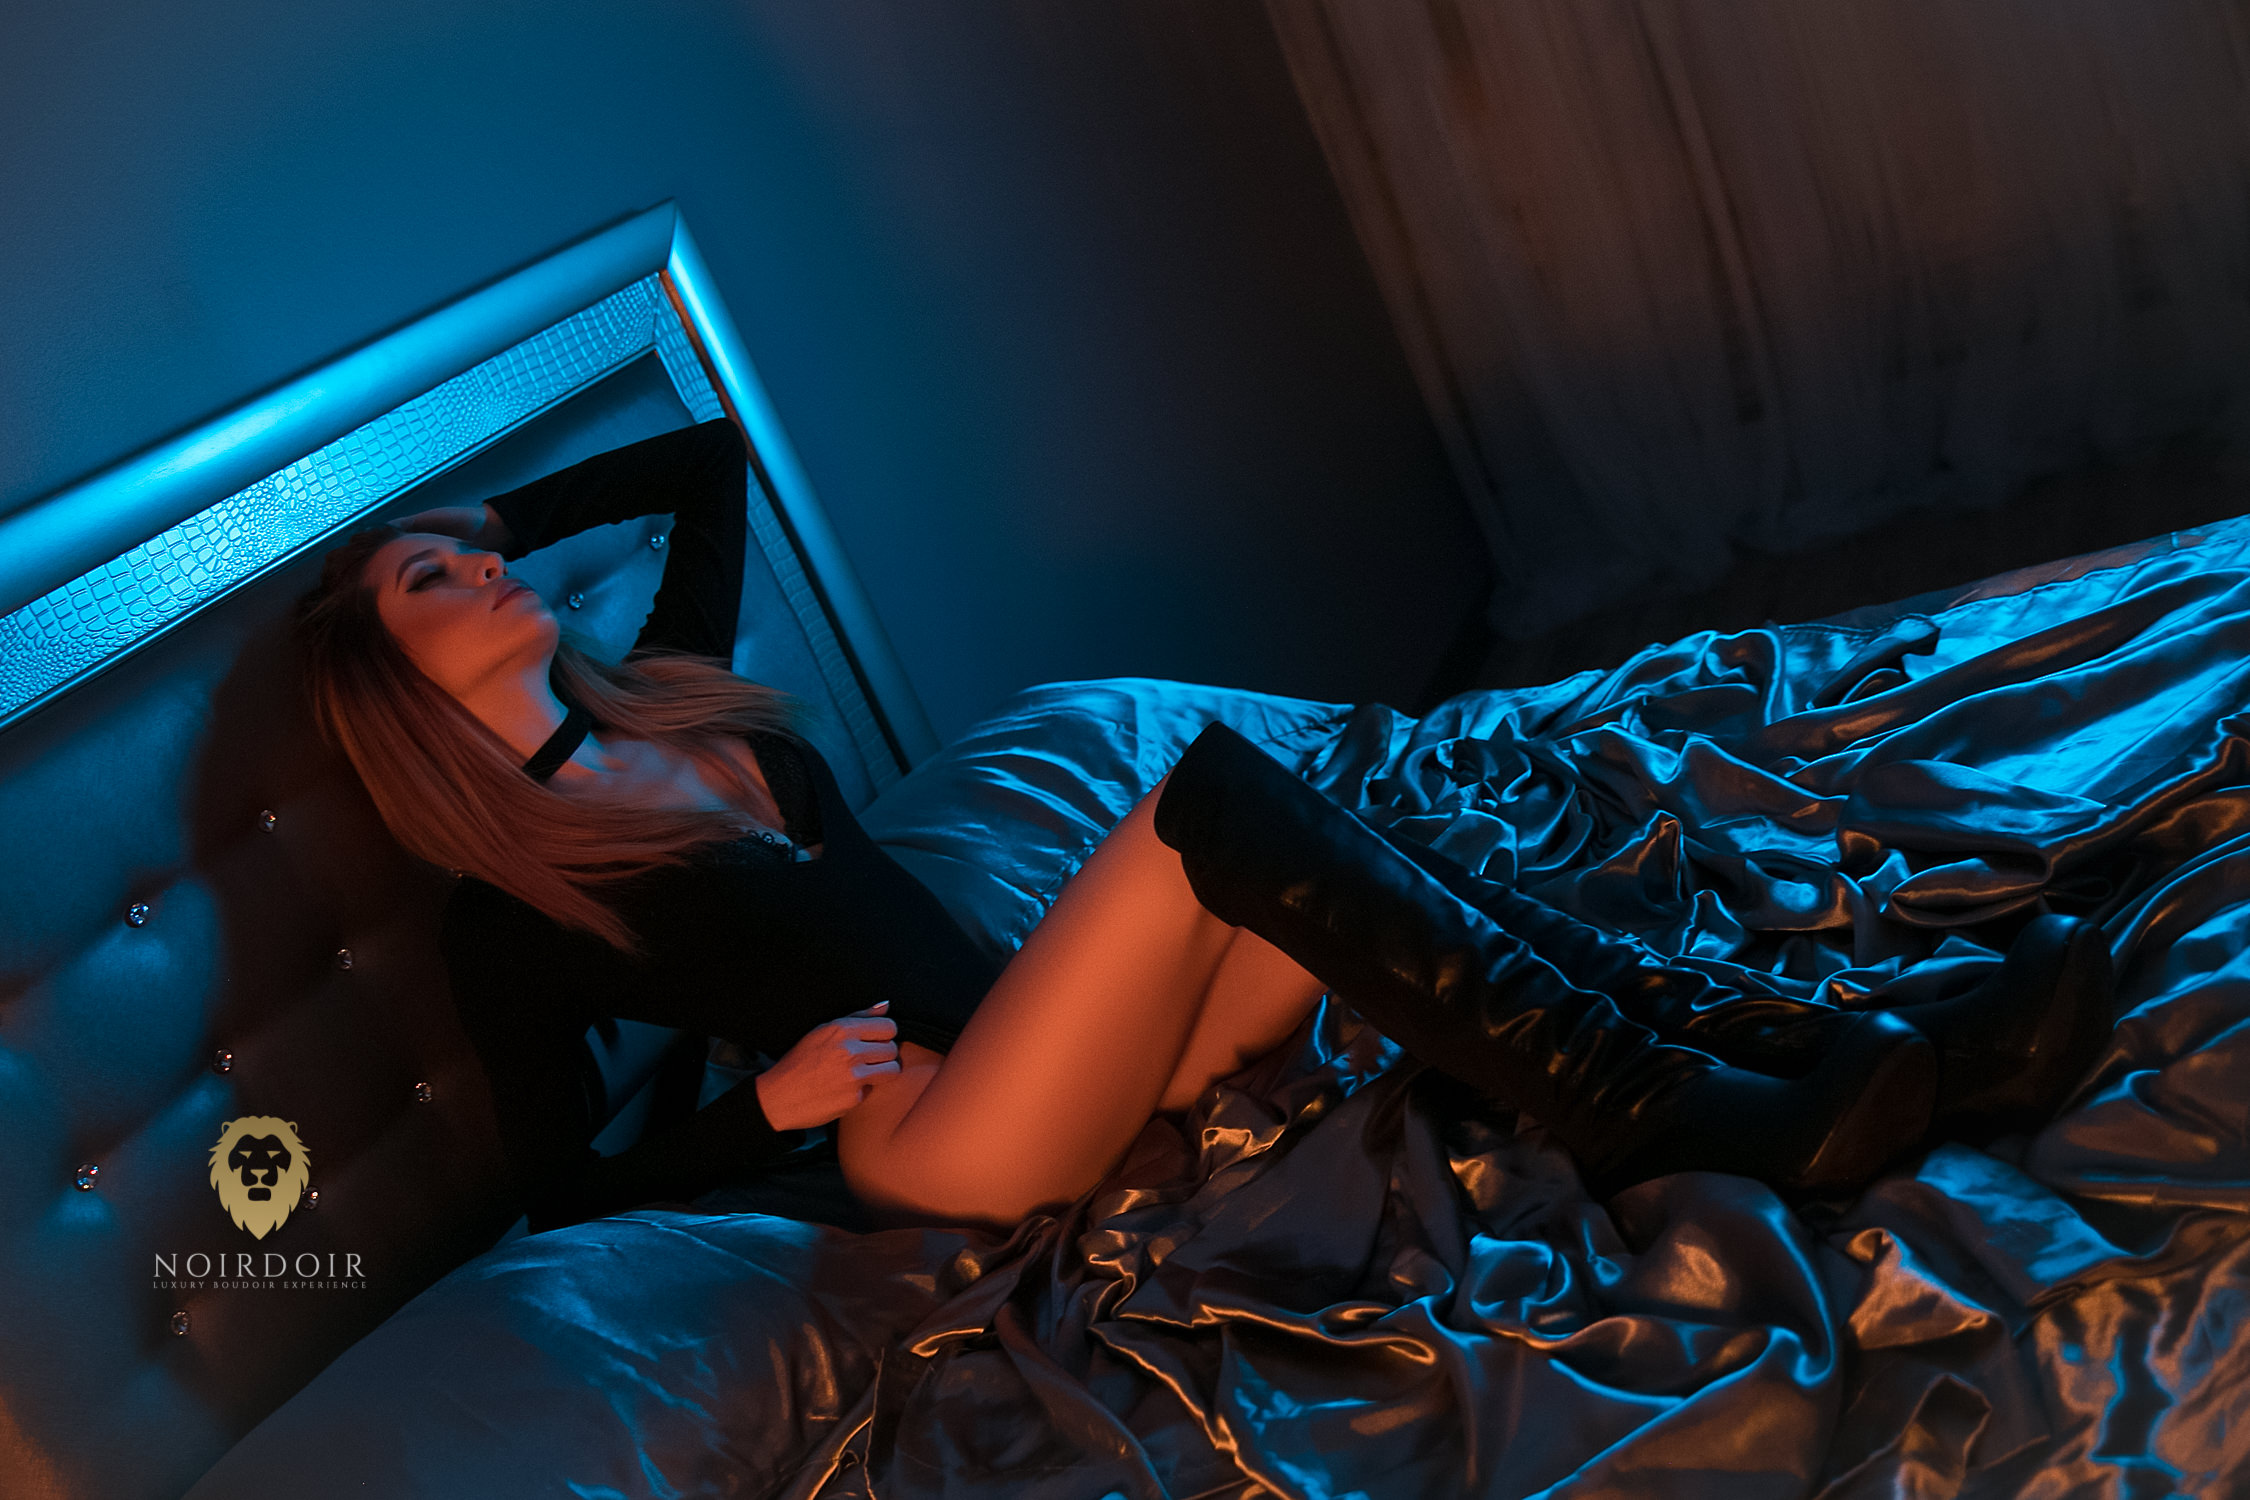 Midnight Glam Boudoir Photoshoot with Irene